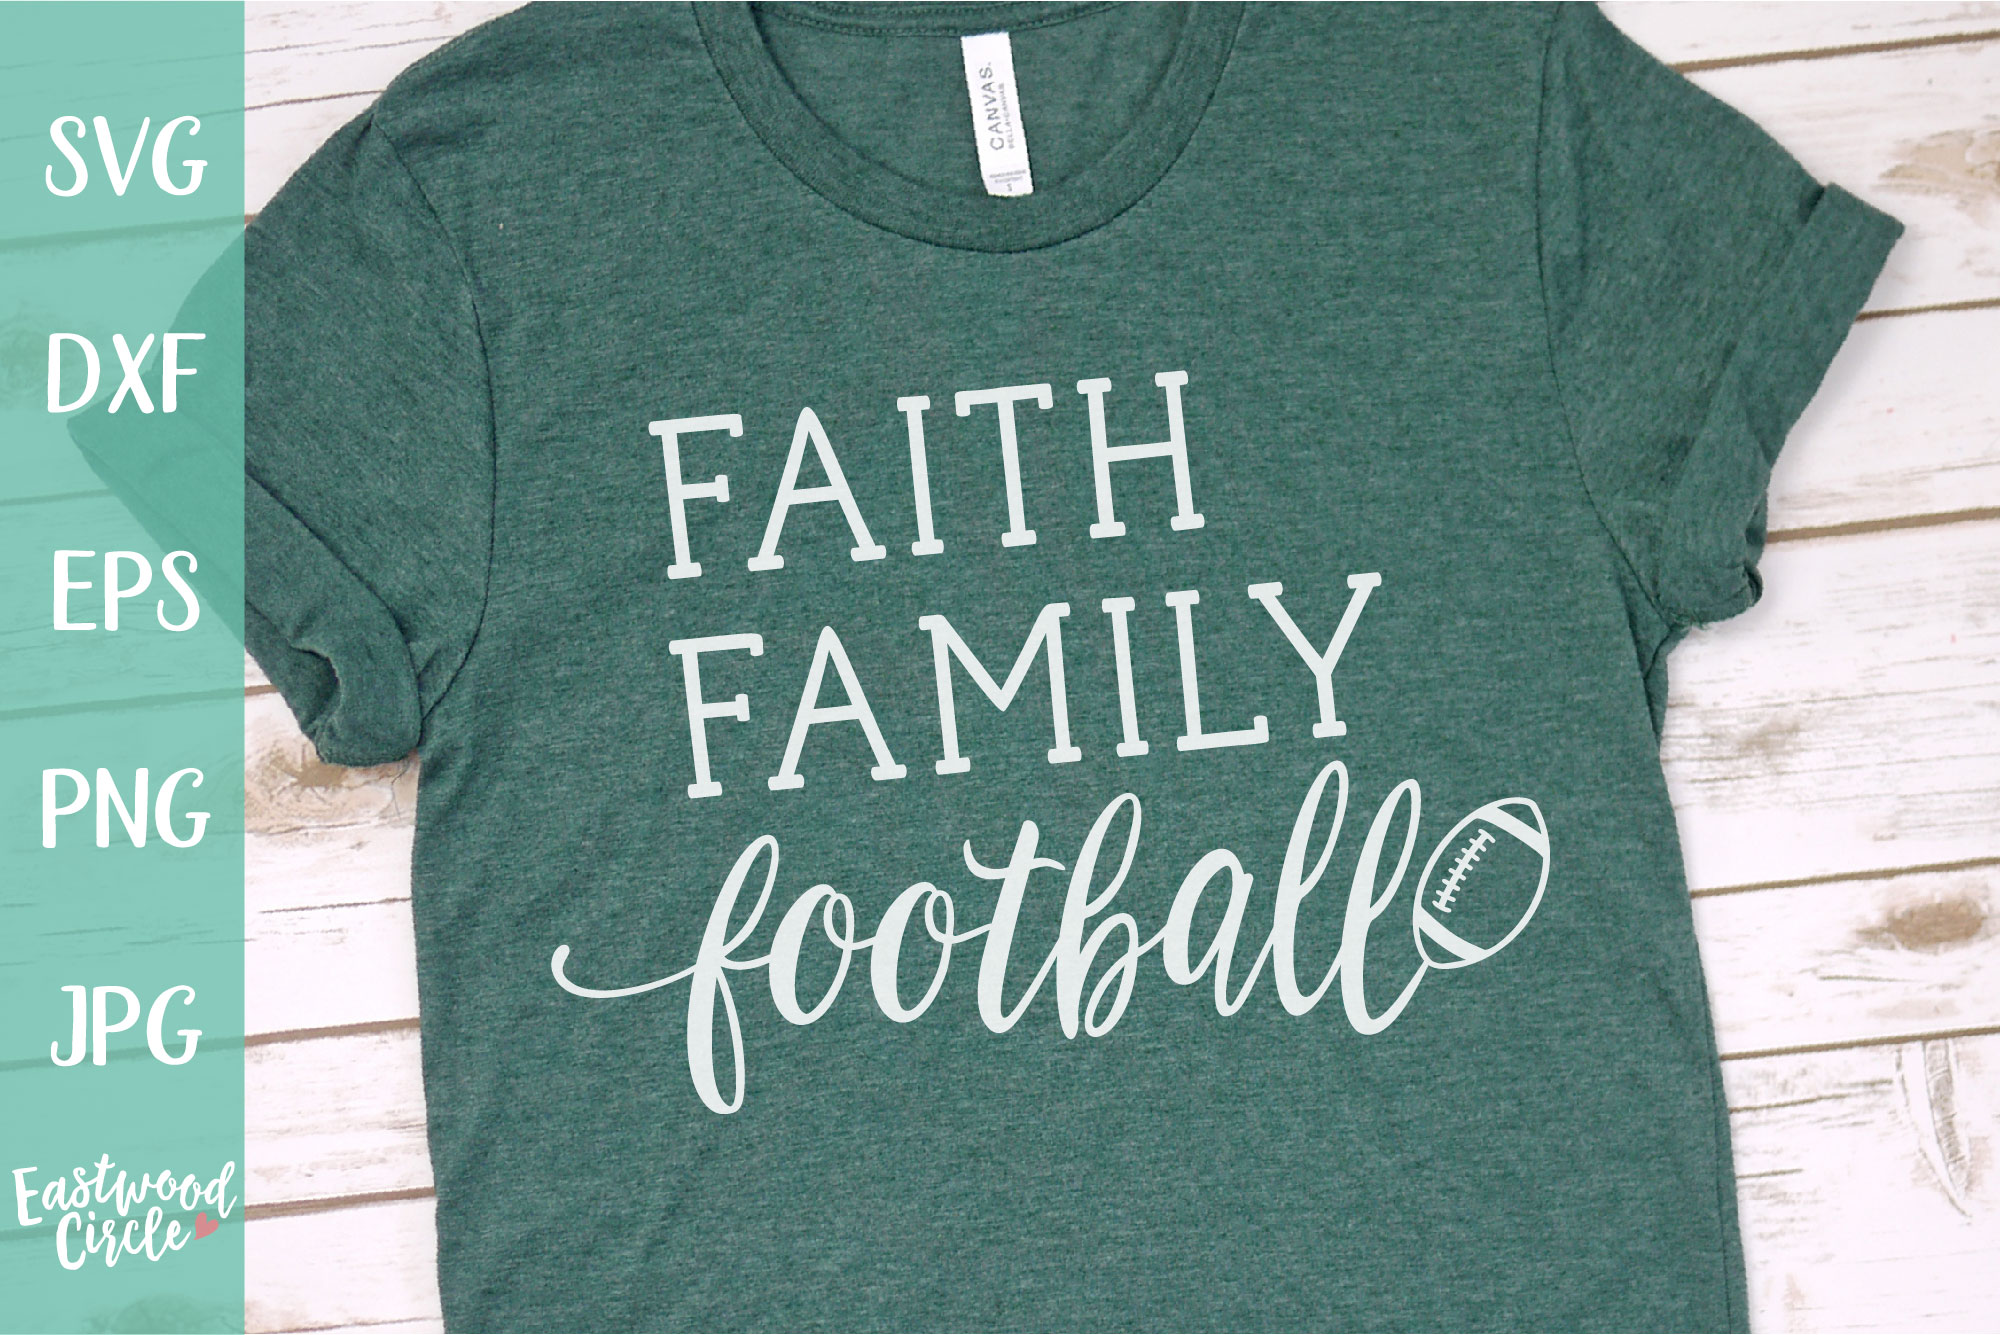 Faith Family Football - Football SVG File for Crafters example image 1